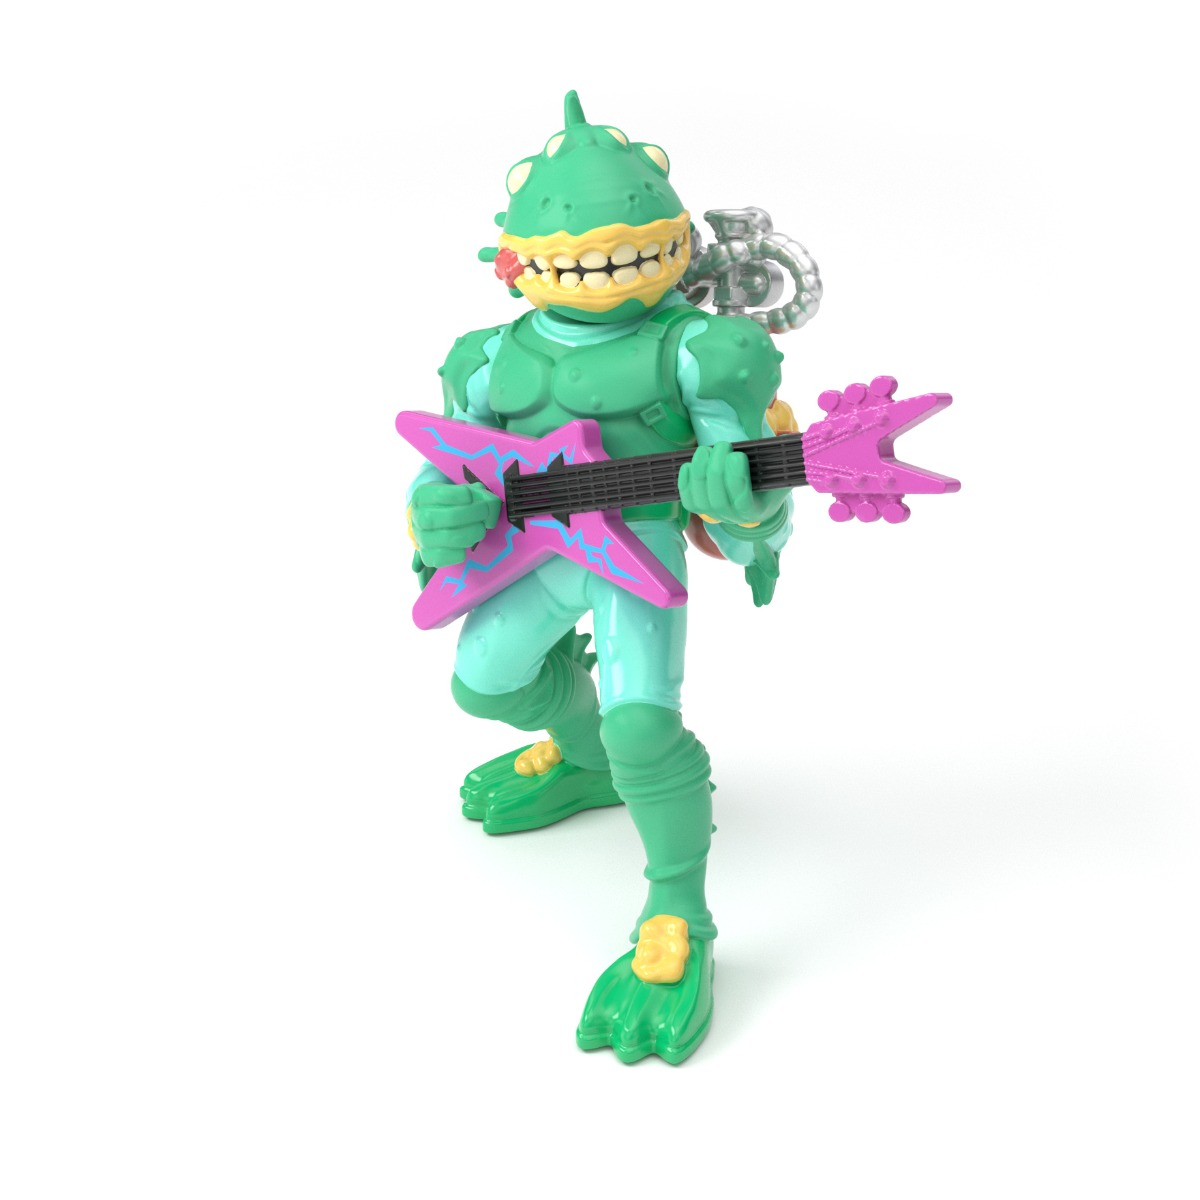 Figurina Fortnite S2 - Moisty Merman